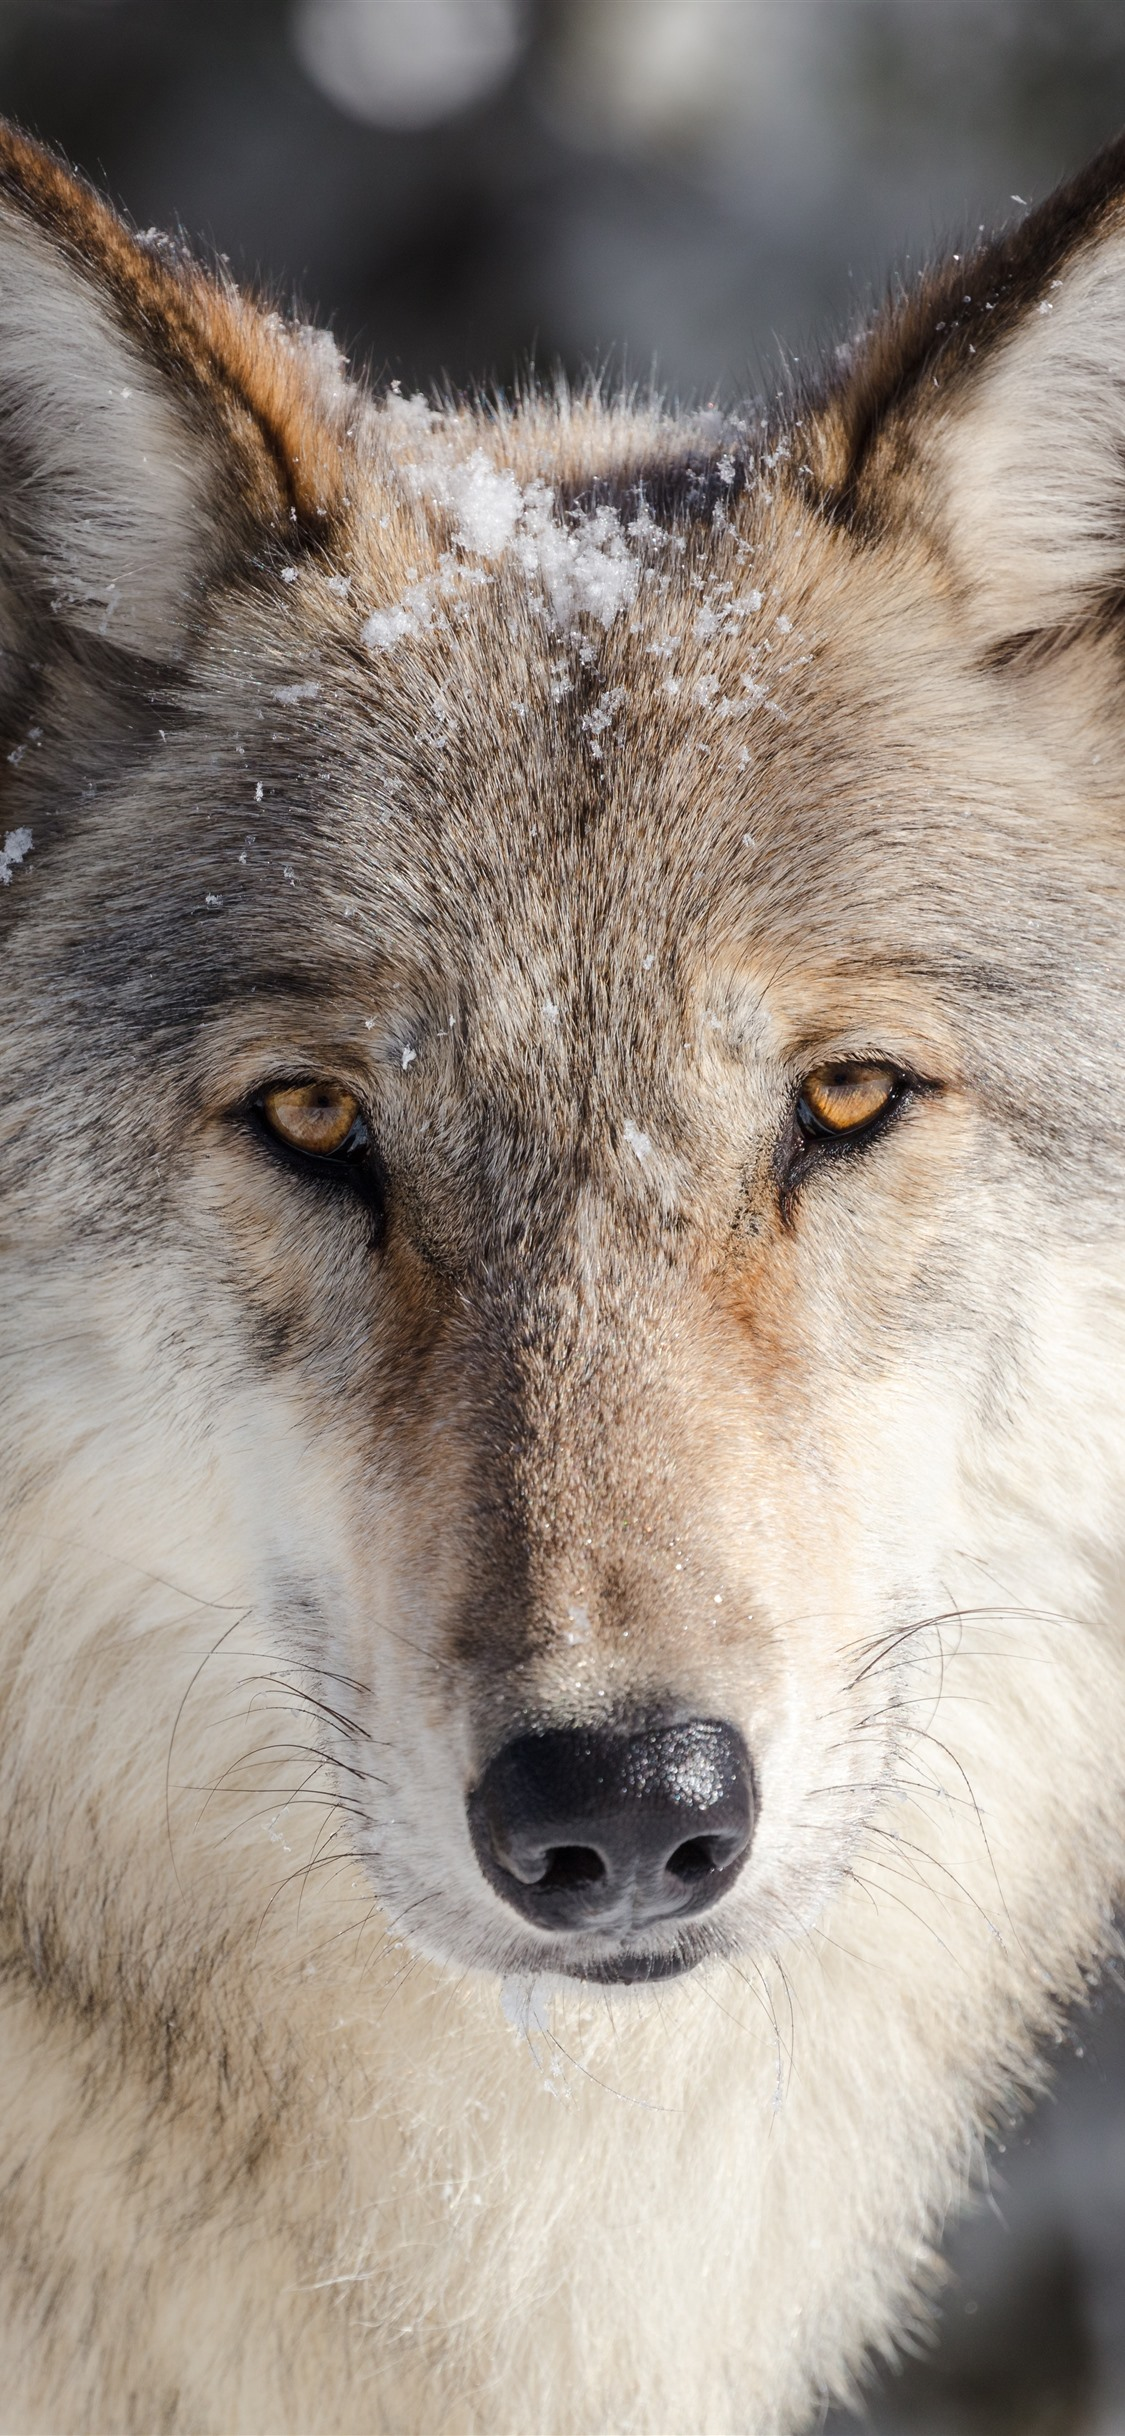 Wallpaper Wolf look, front view, face, snow 7680x4320 UHD ...